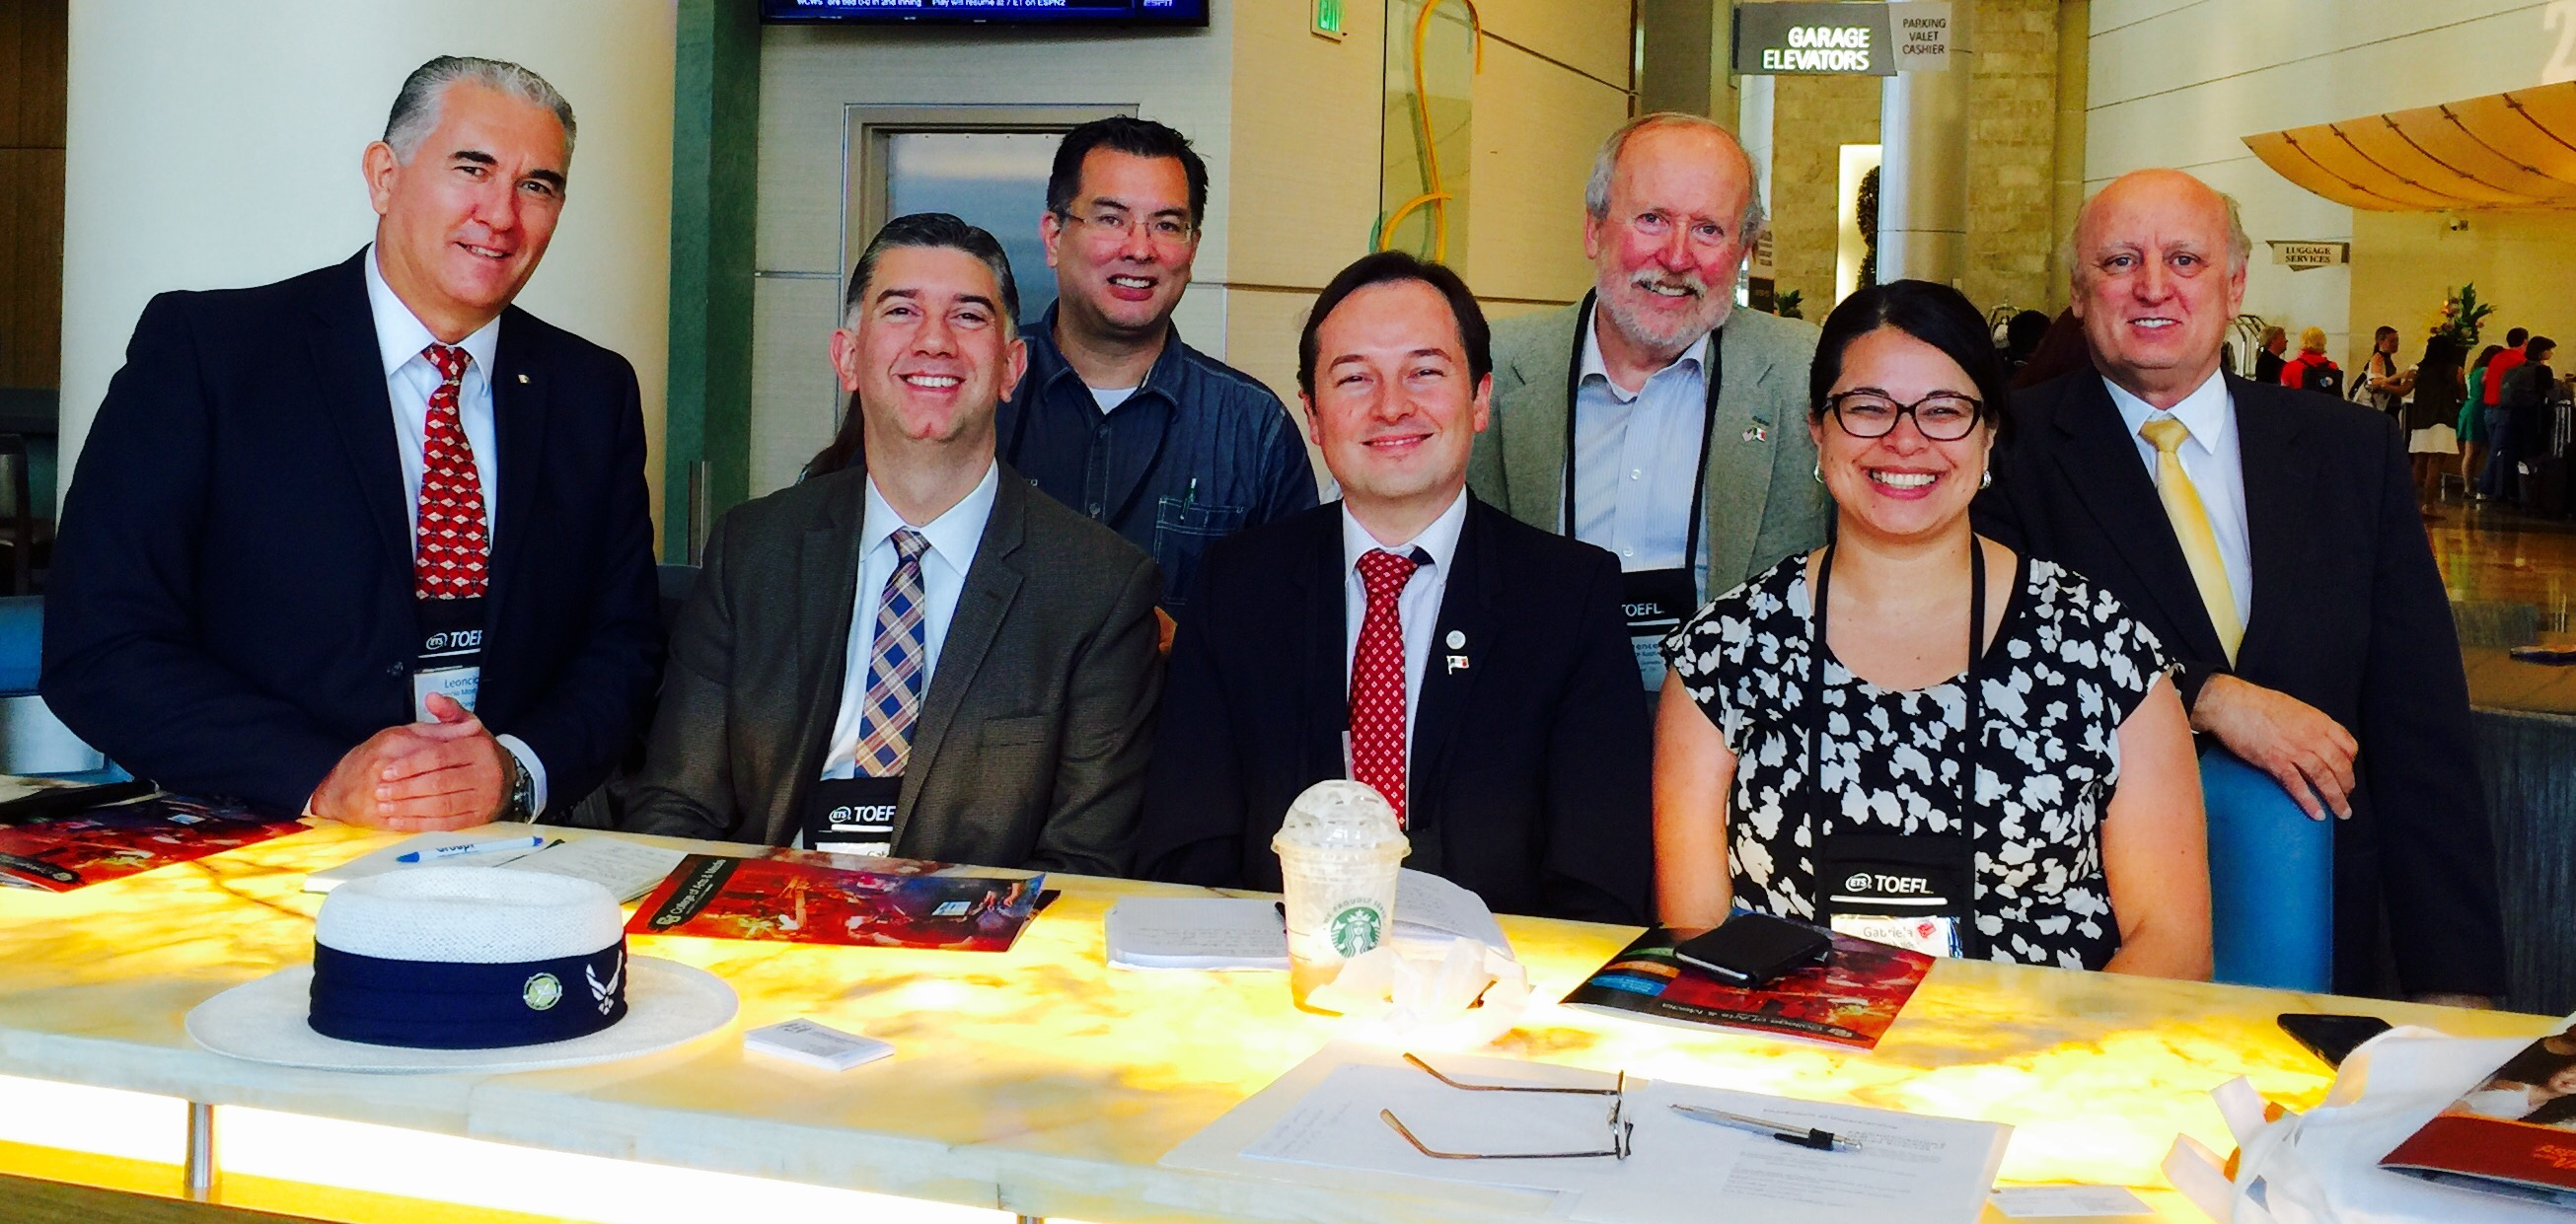 Dean Kaptain with academic/cultural leaders from Guadalajara, Mexico.